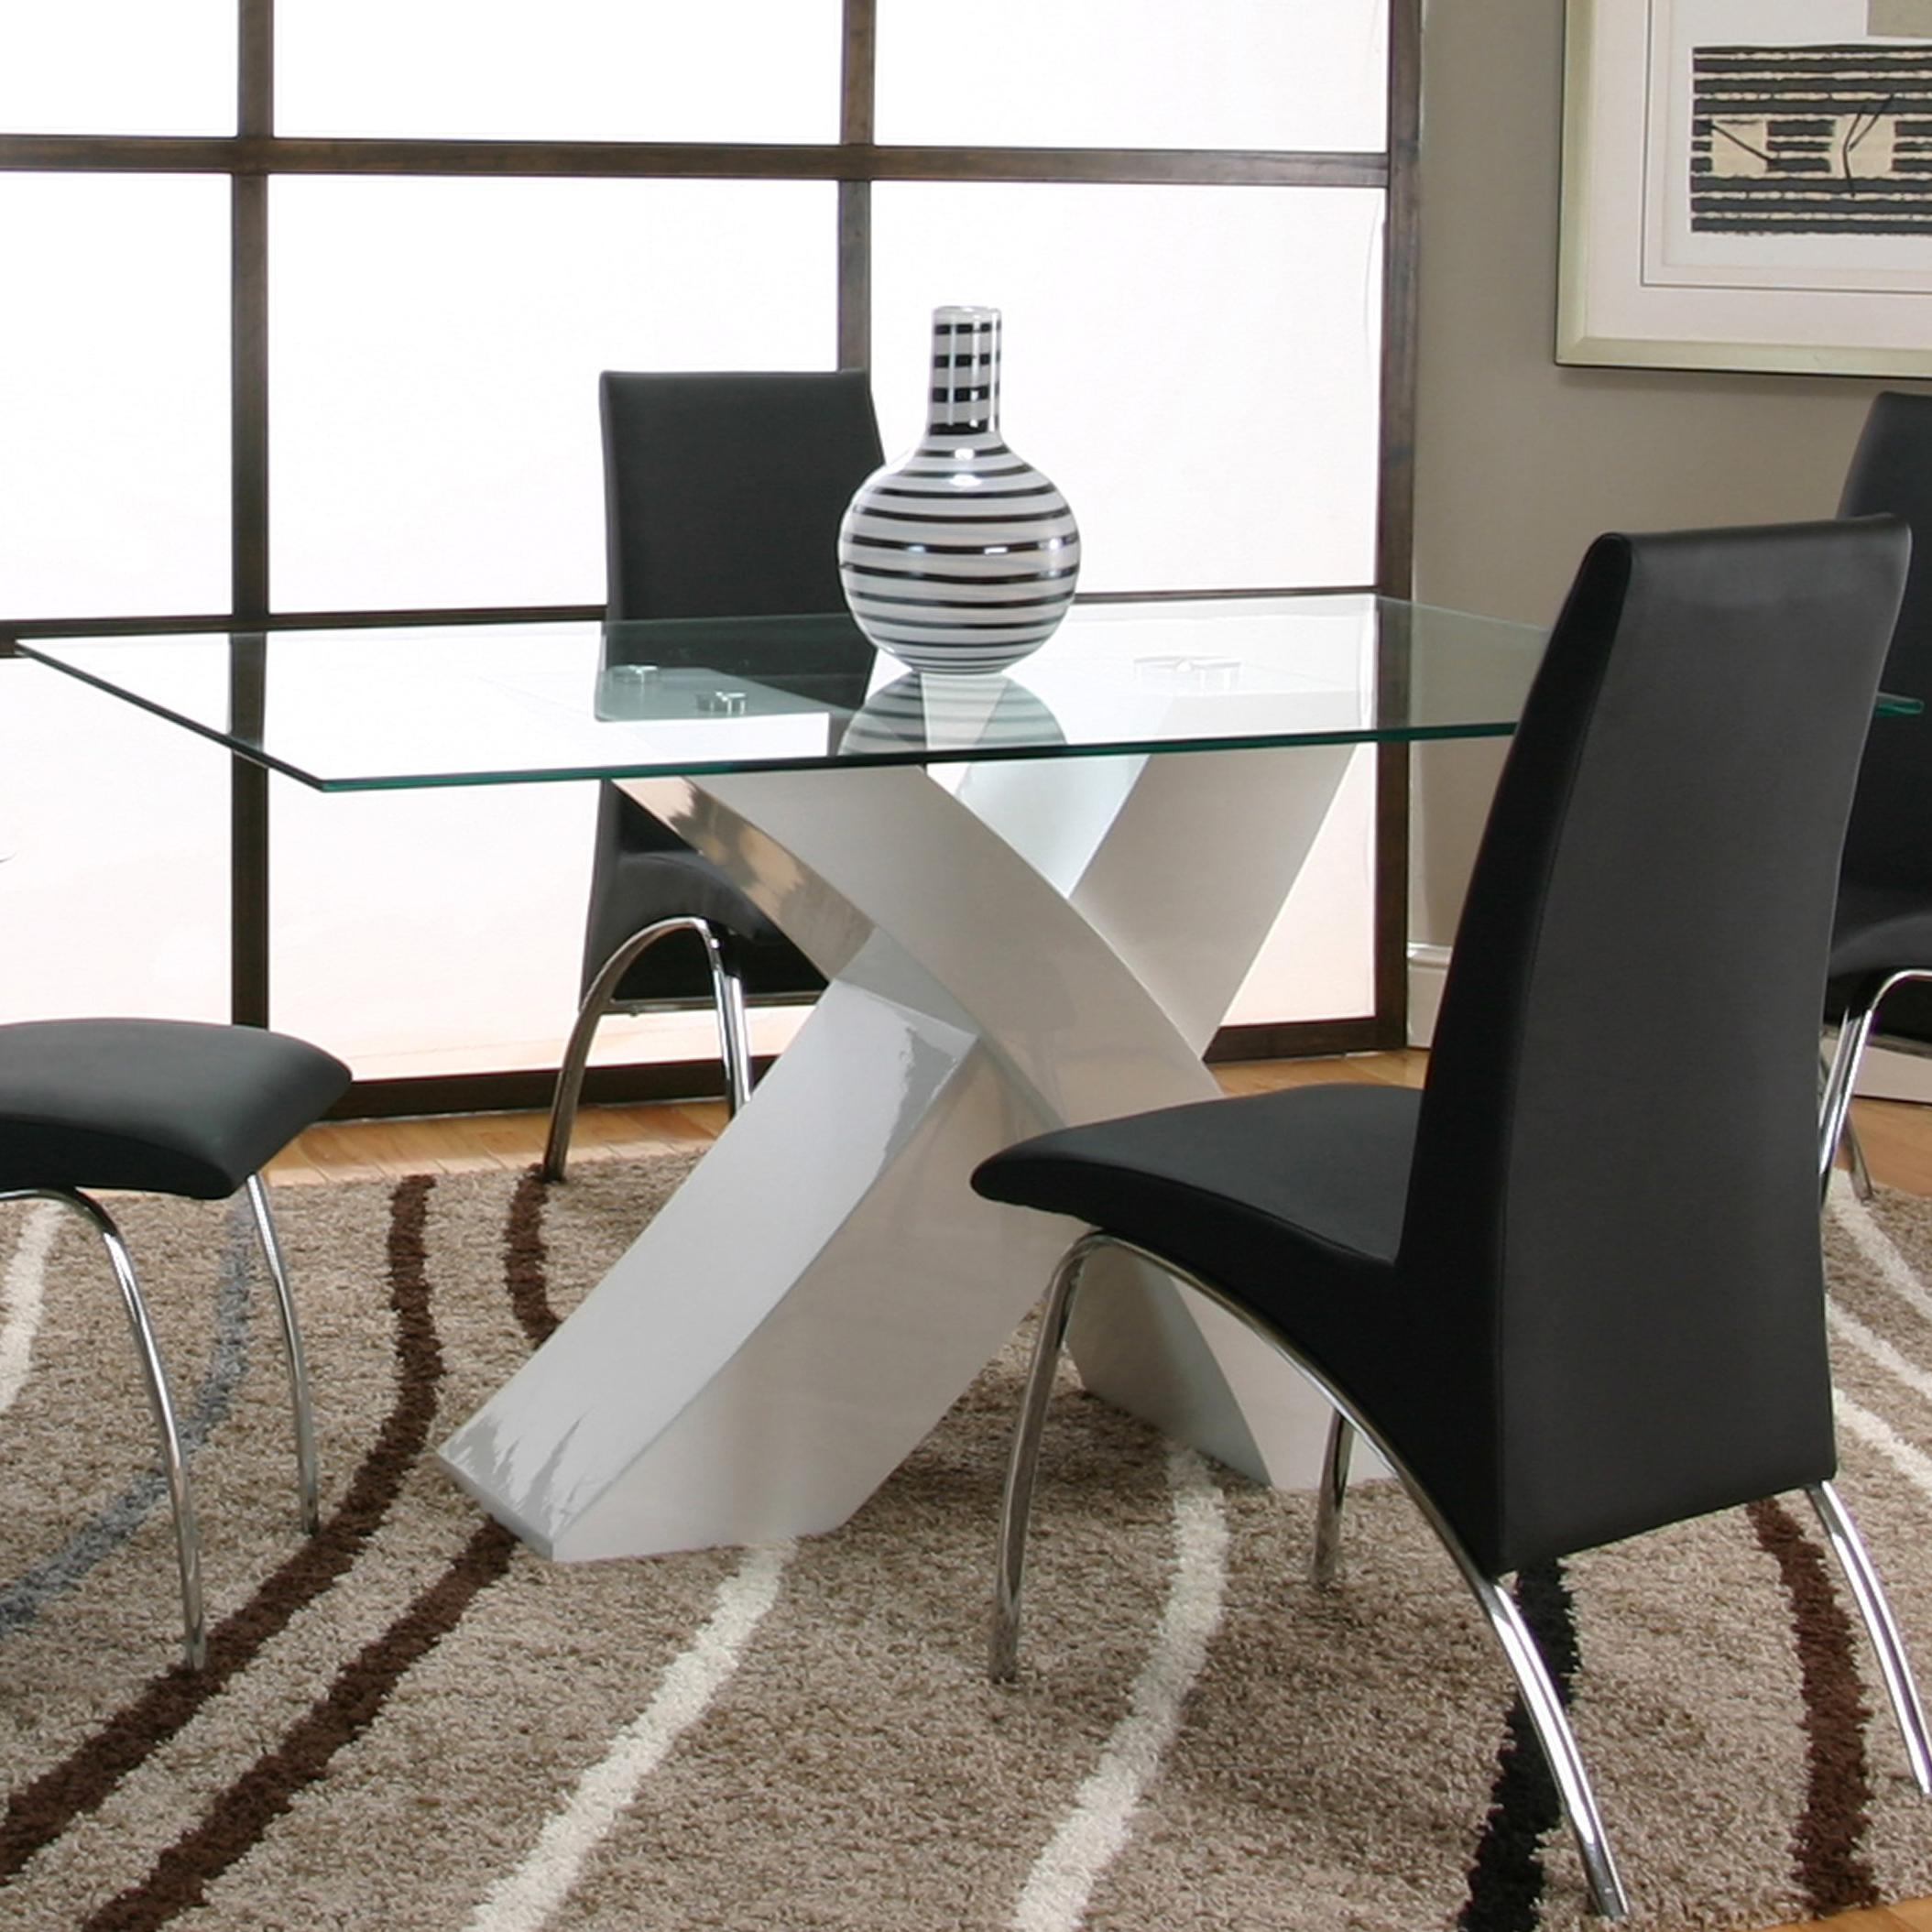 Rectangular Tempered Glass Table Top With Polyester/Polyurethane White Base